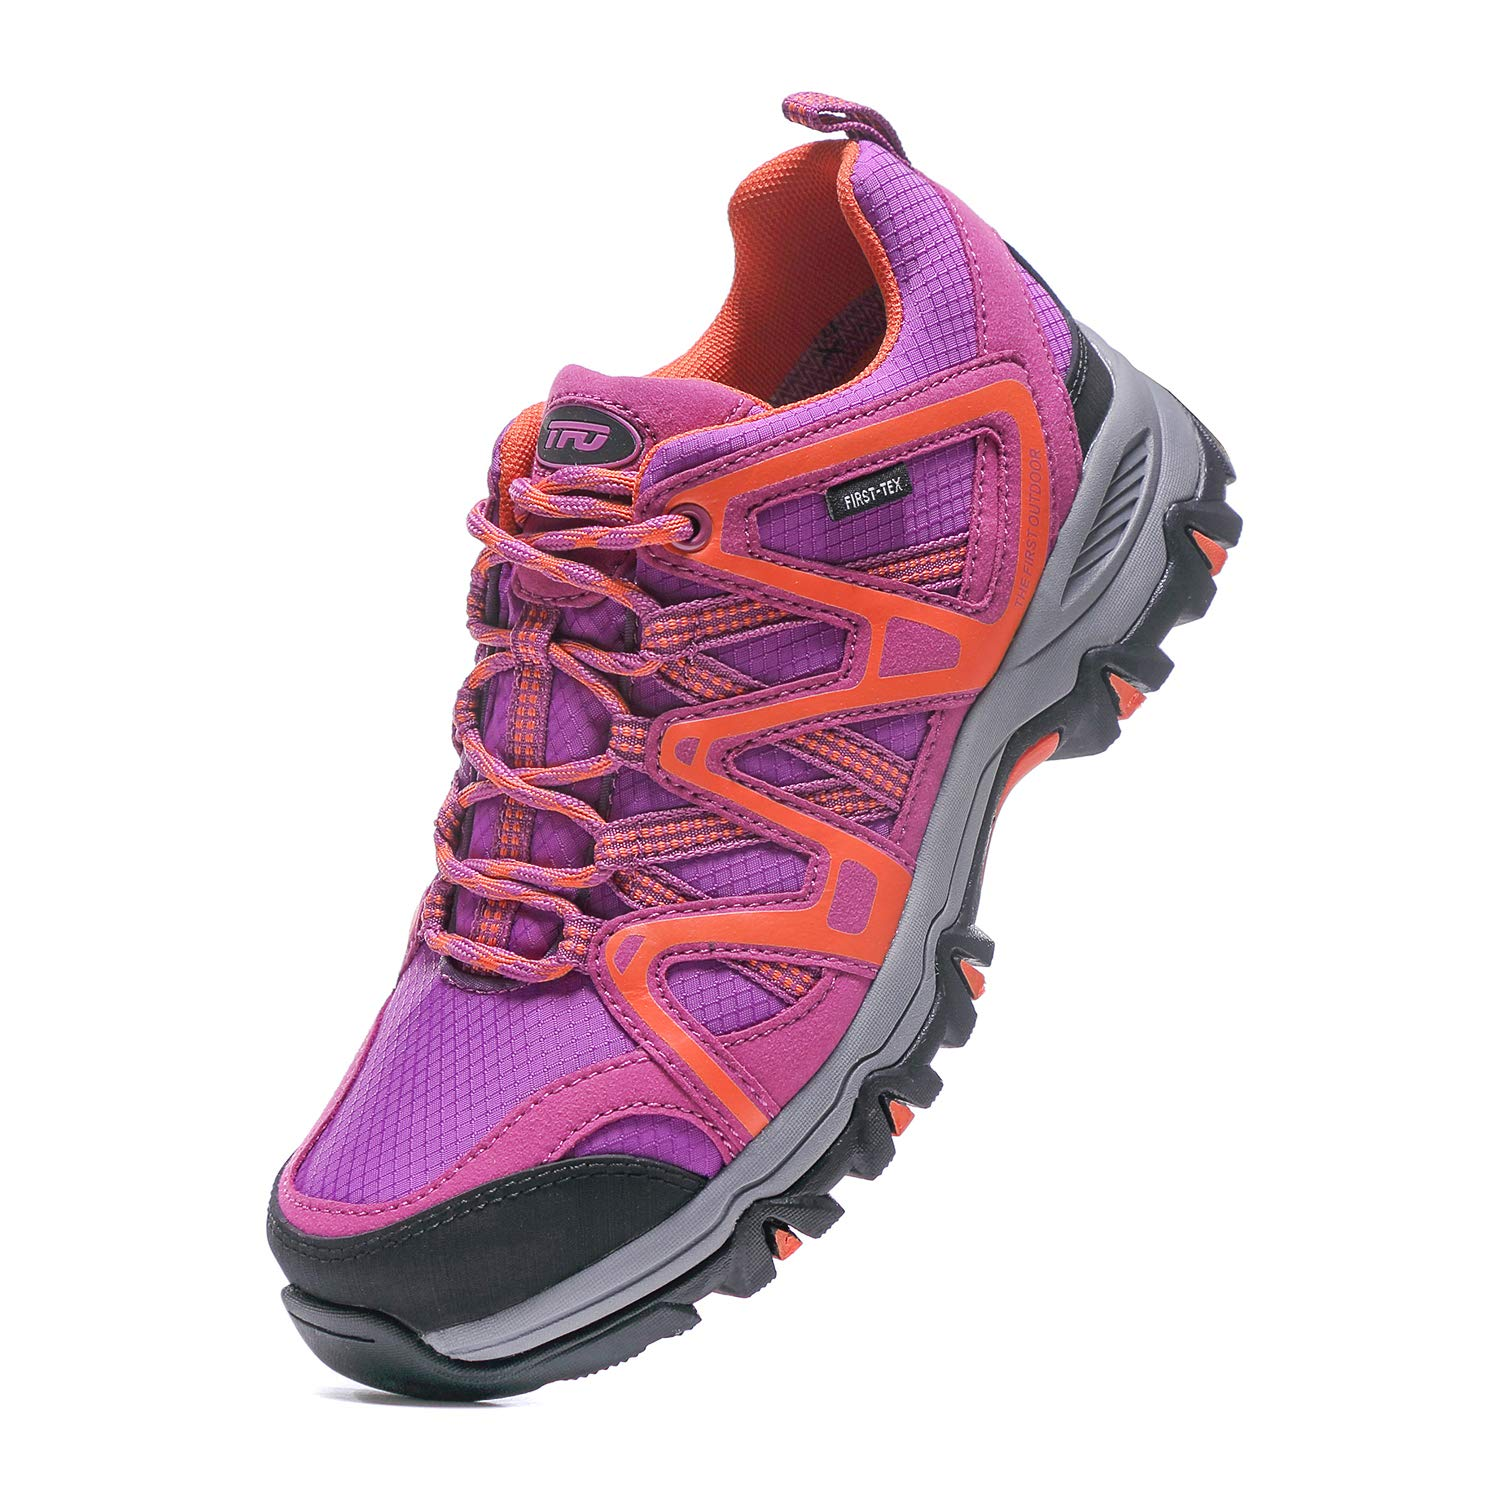 Women's Hiking Shoes Waterproof First-Tex Membrane Breathable Trekking Running Trail Shoes (Size 9, Purple/Orange)